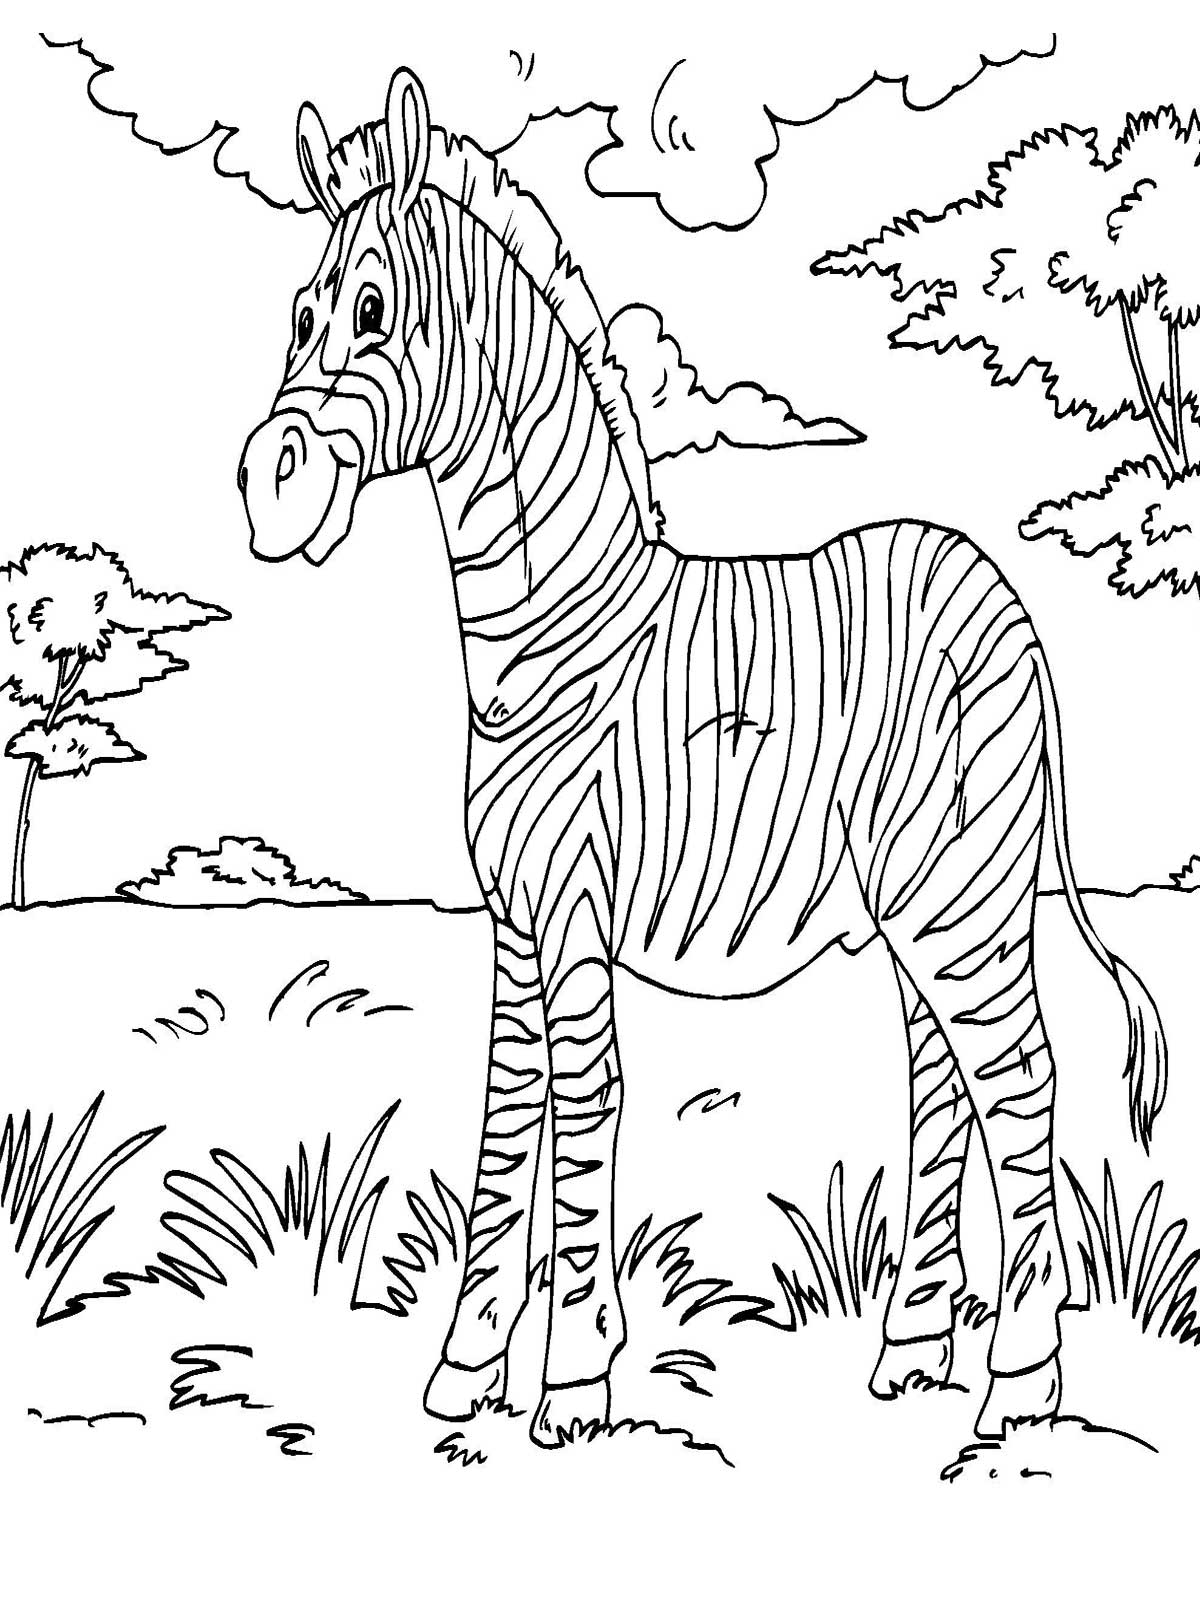 Zebra coloring page without stripes for Zebra without stripes coloring page